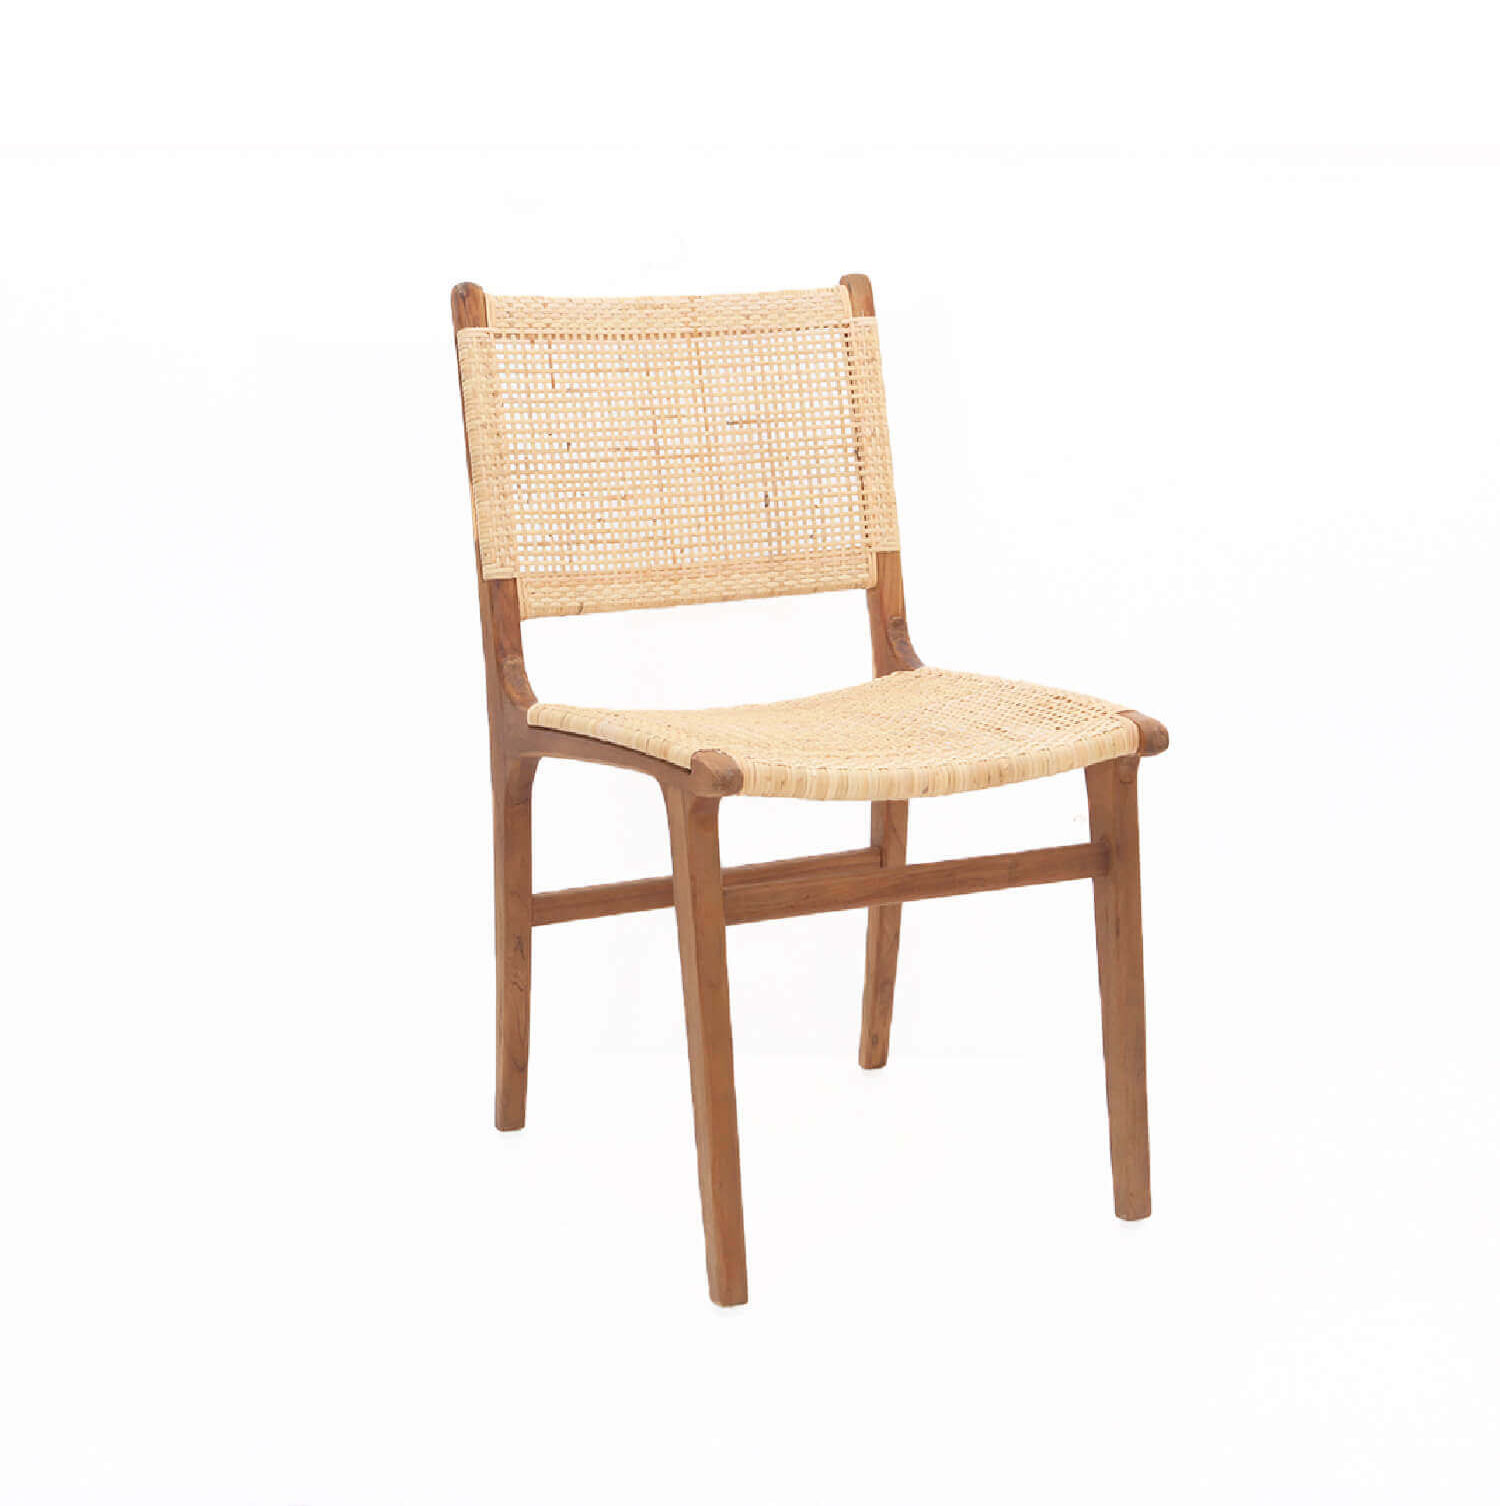 Teak Rattan Dining Chair